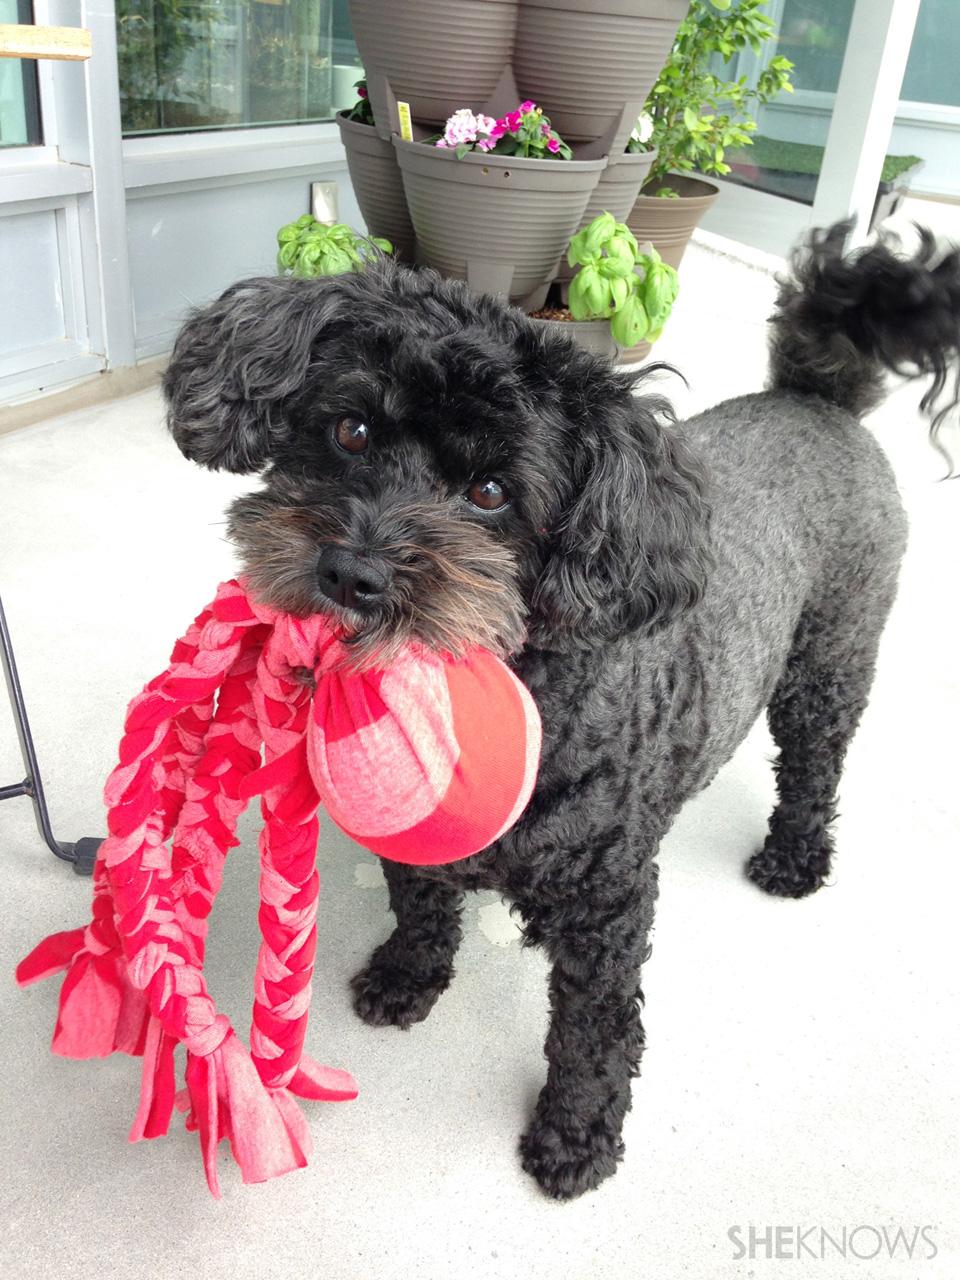 Don't toss that old T-shirt! Snip it up to make this toy for your furry friend.